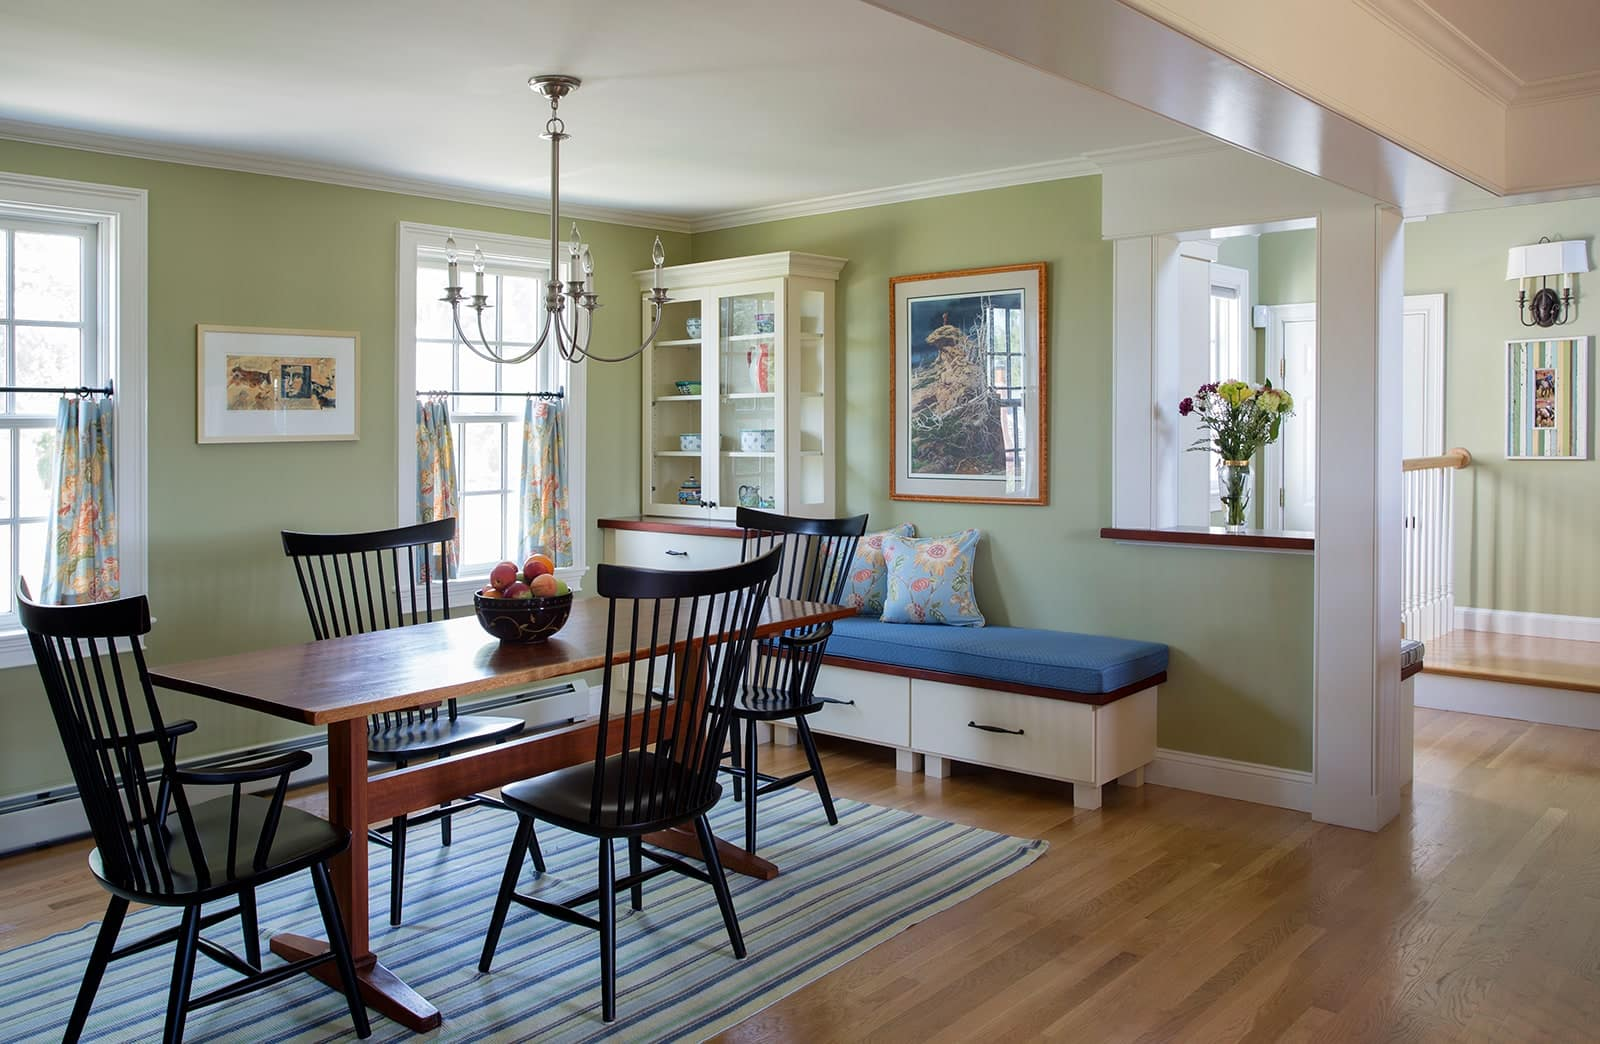 Cape Style Home Interiors Ipswich MA Dining Room